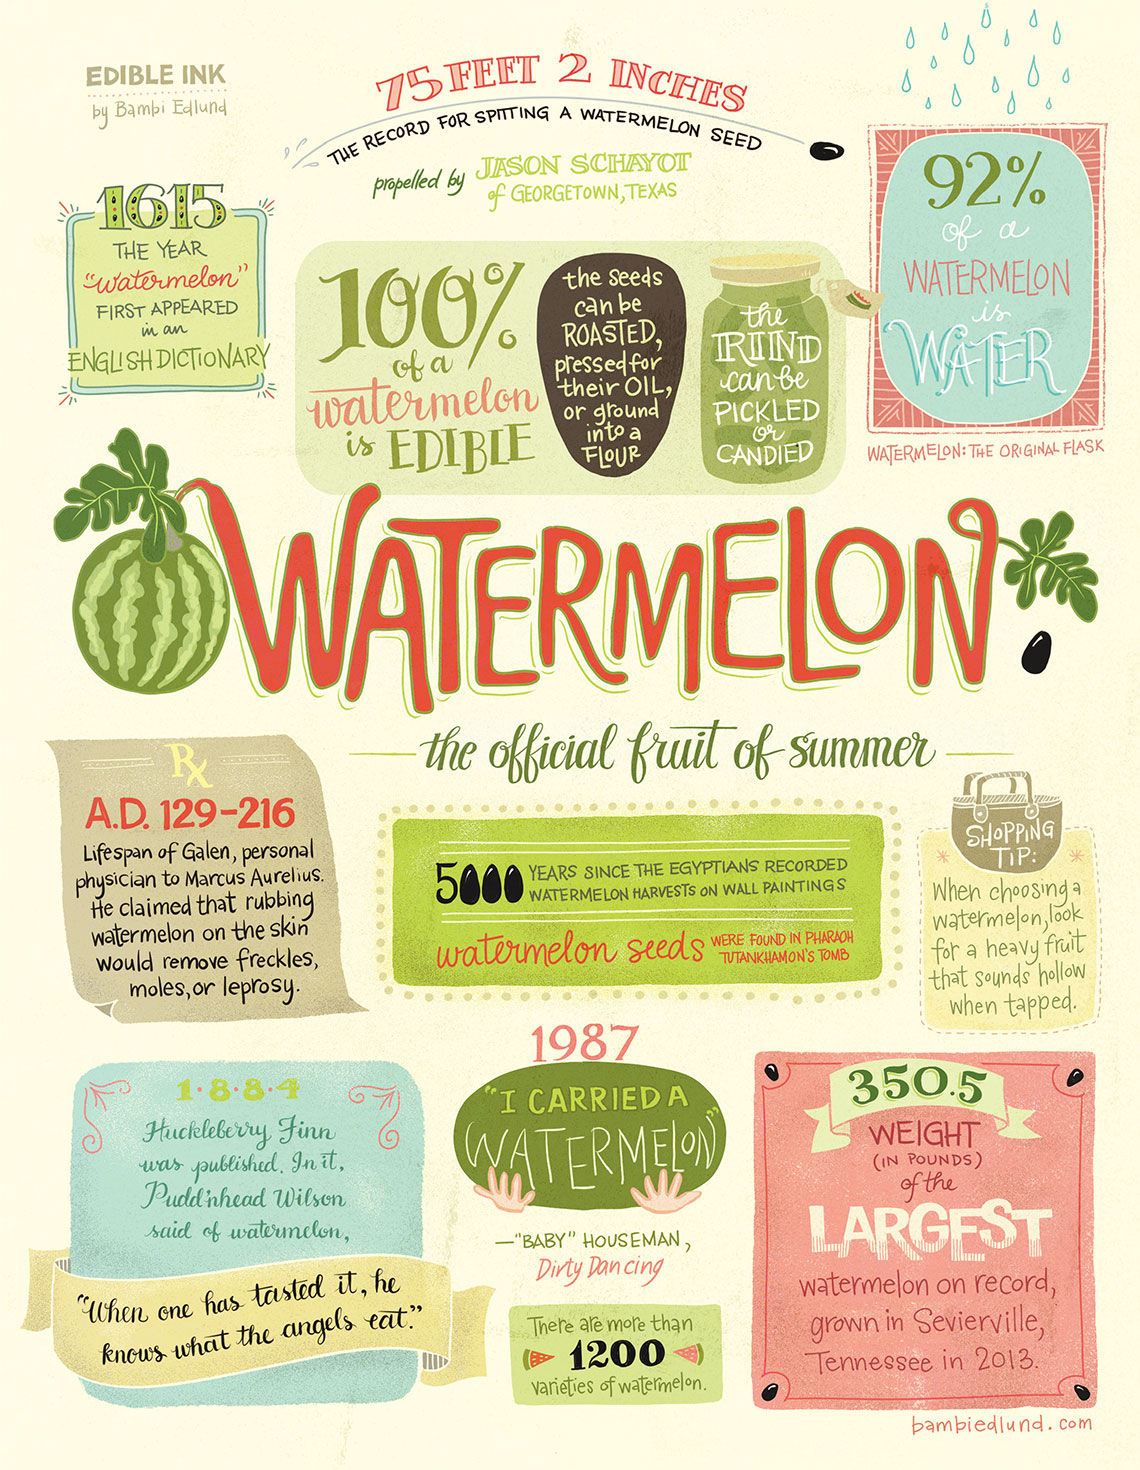 edible ink watermelon